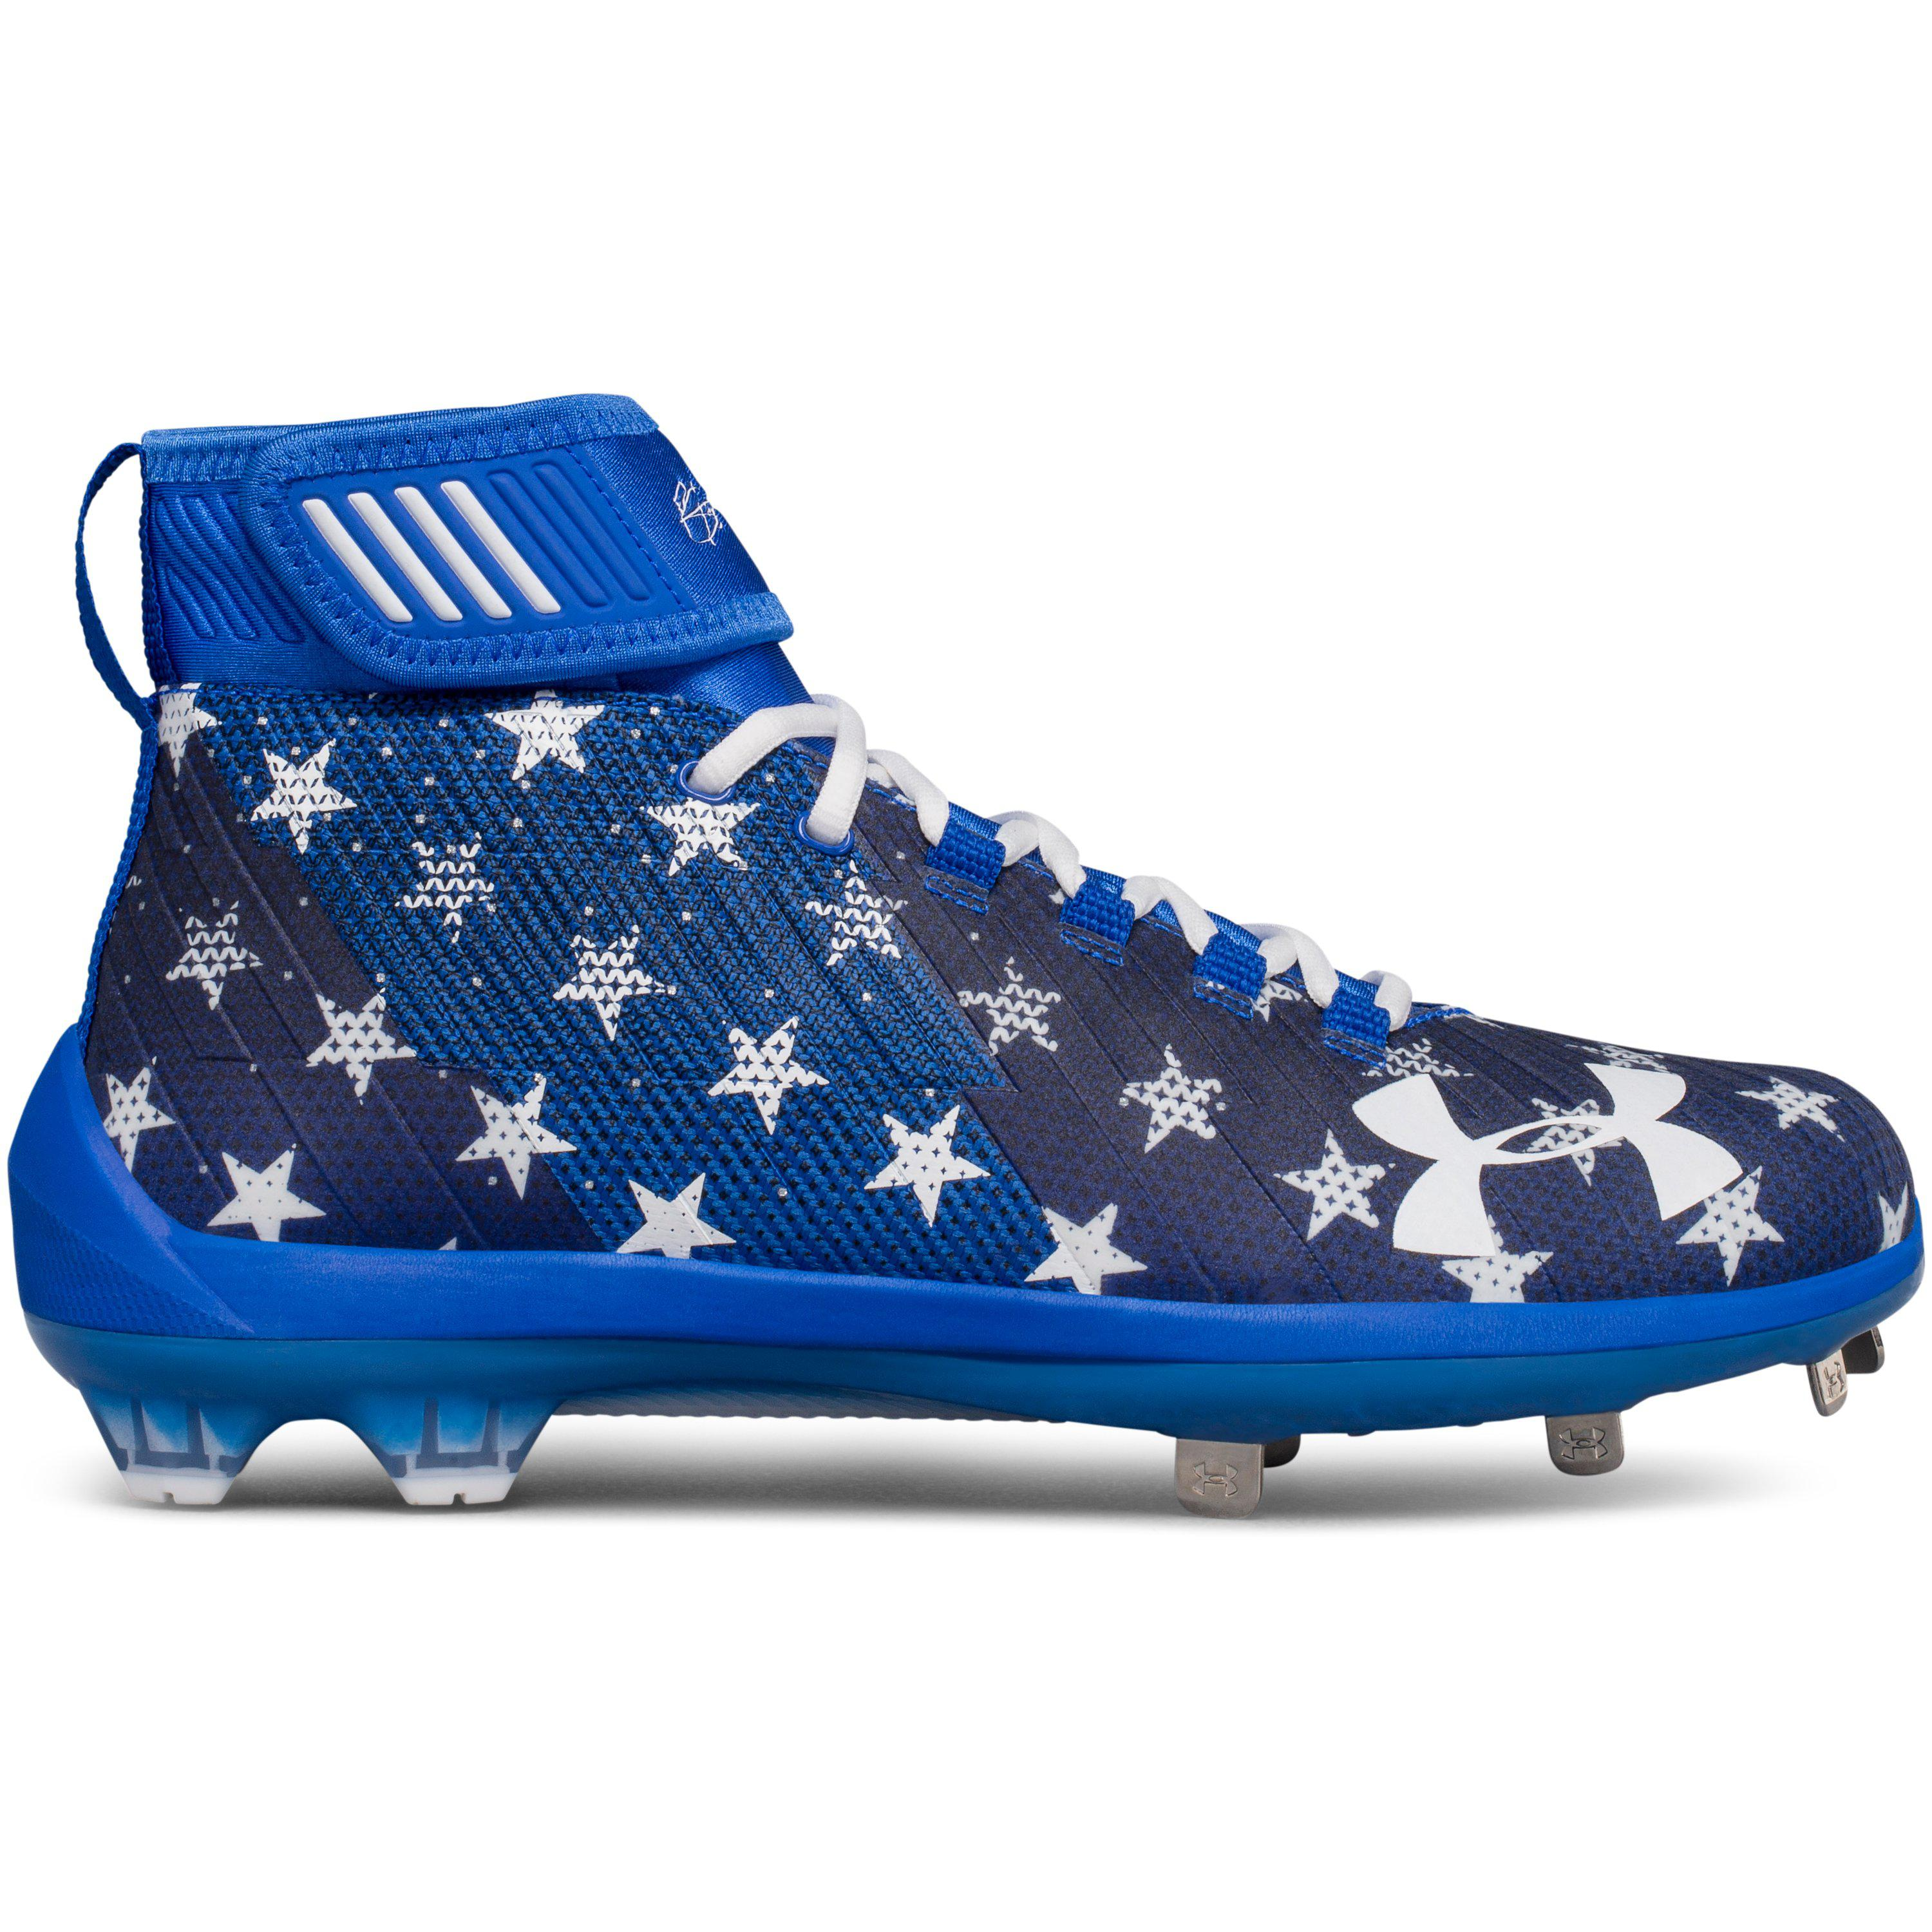 09f6c4ee8967 Under Armour Men's Ua Harper 2 Mid St – Limited Edition Baseball ...